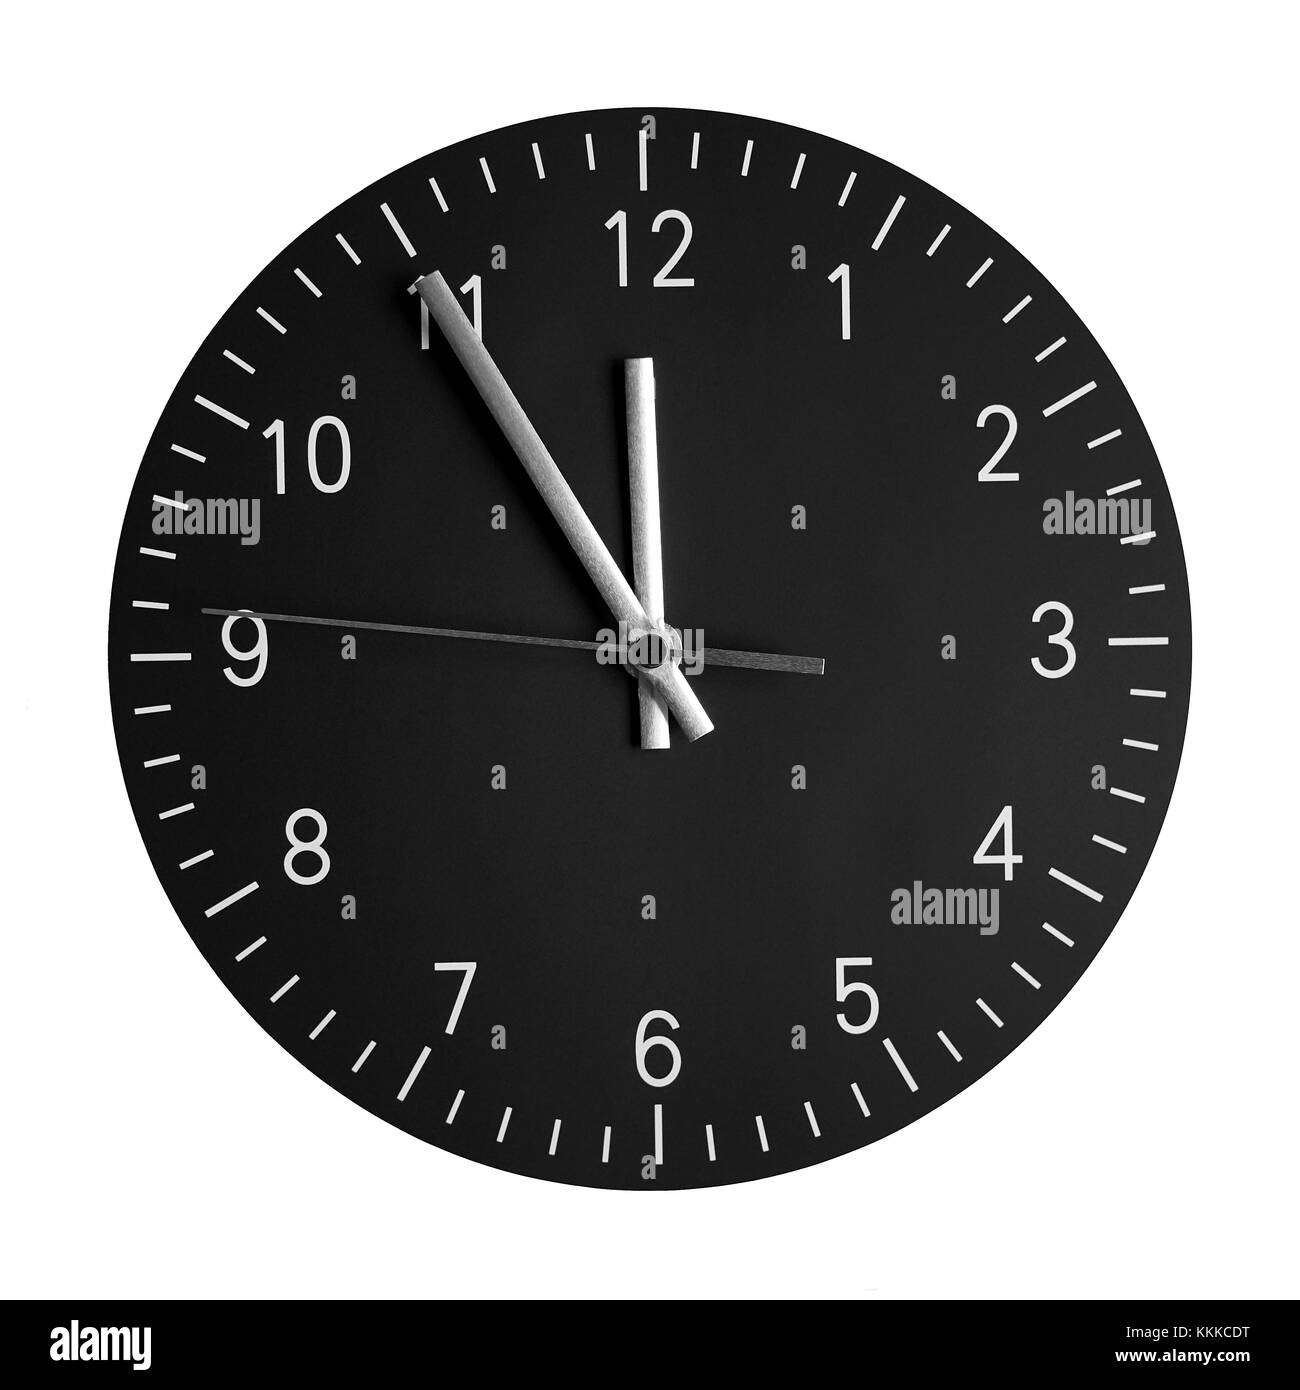 isolated wall clock with its hands at 5 to 12 - Stock Image